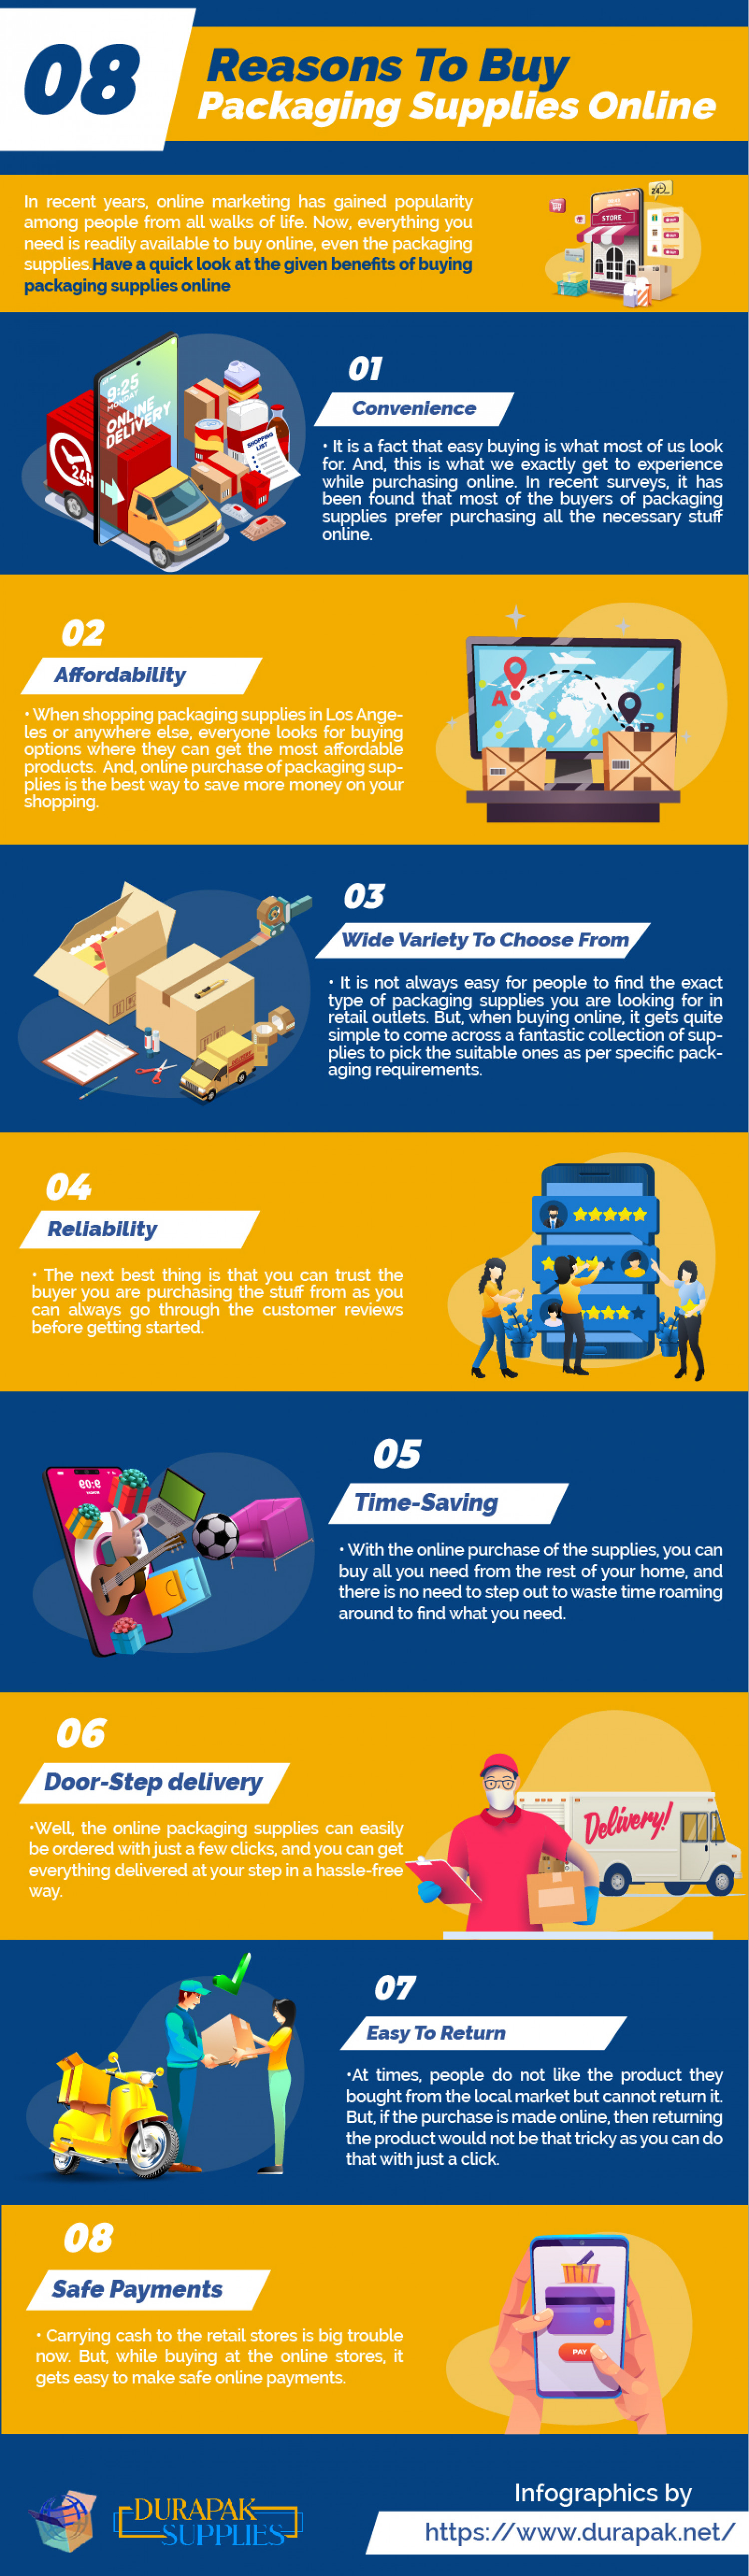 4 Reasons For Buying Packaging Supplies Online Infographic